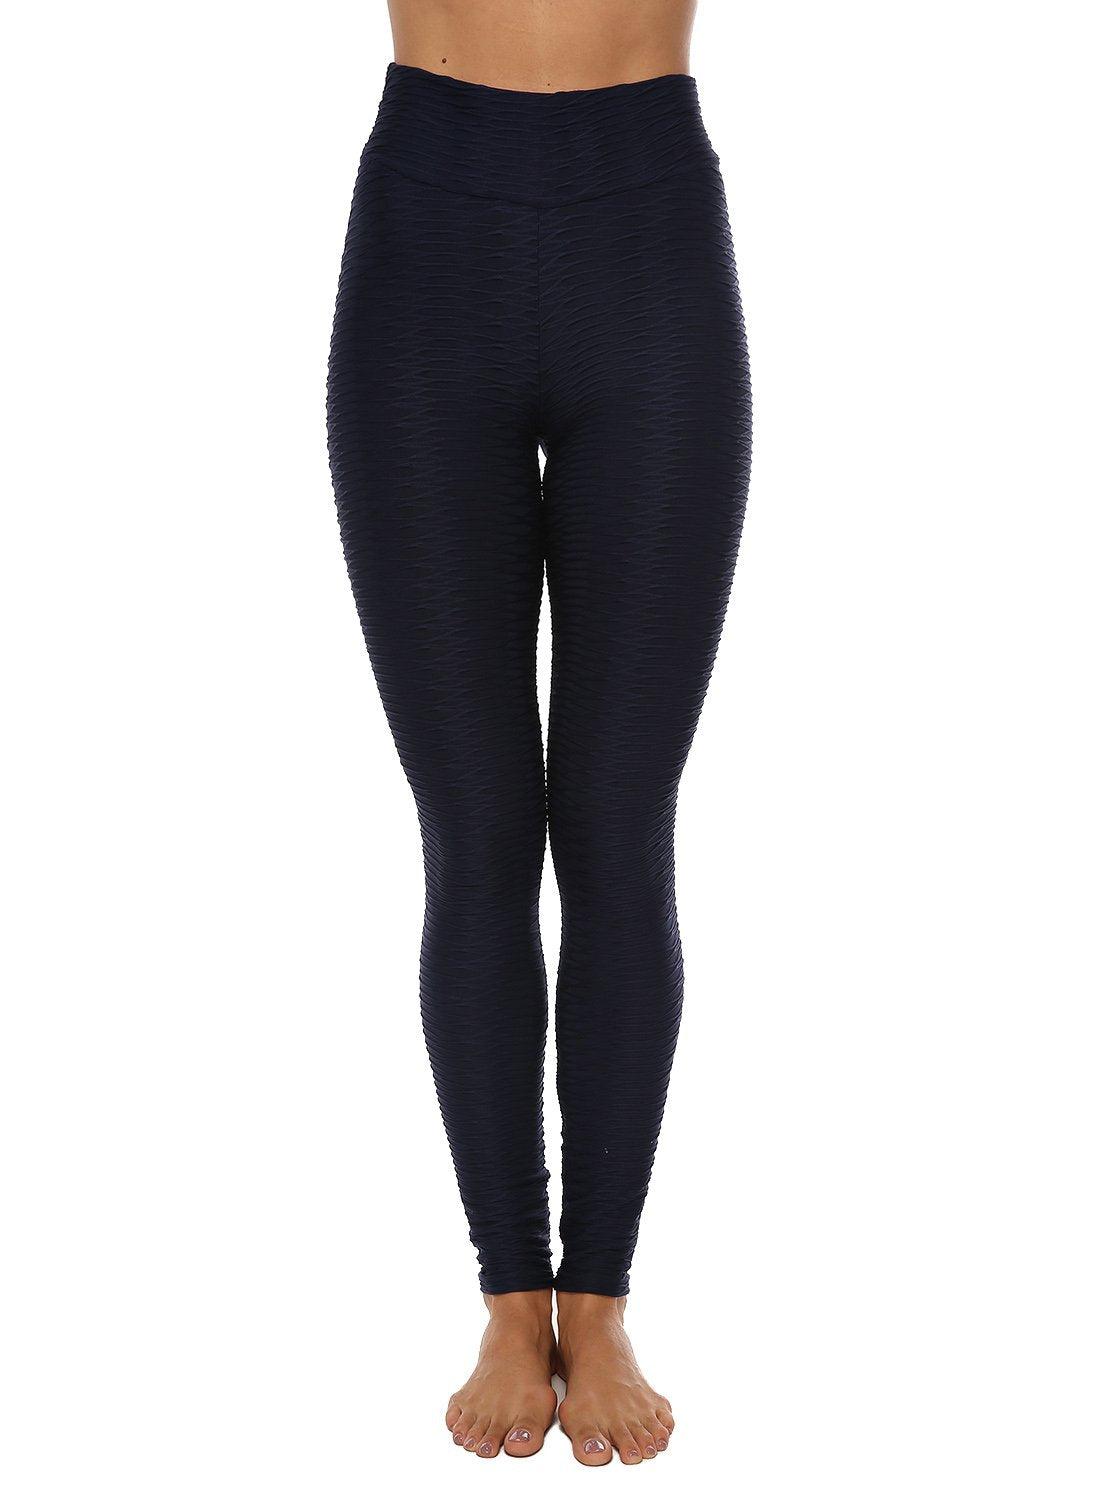 Textured Fitness Lifting Bodycon Leggings-JustFittoo